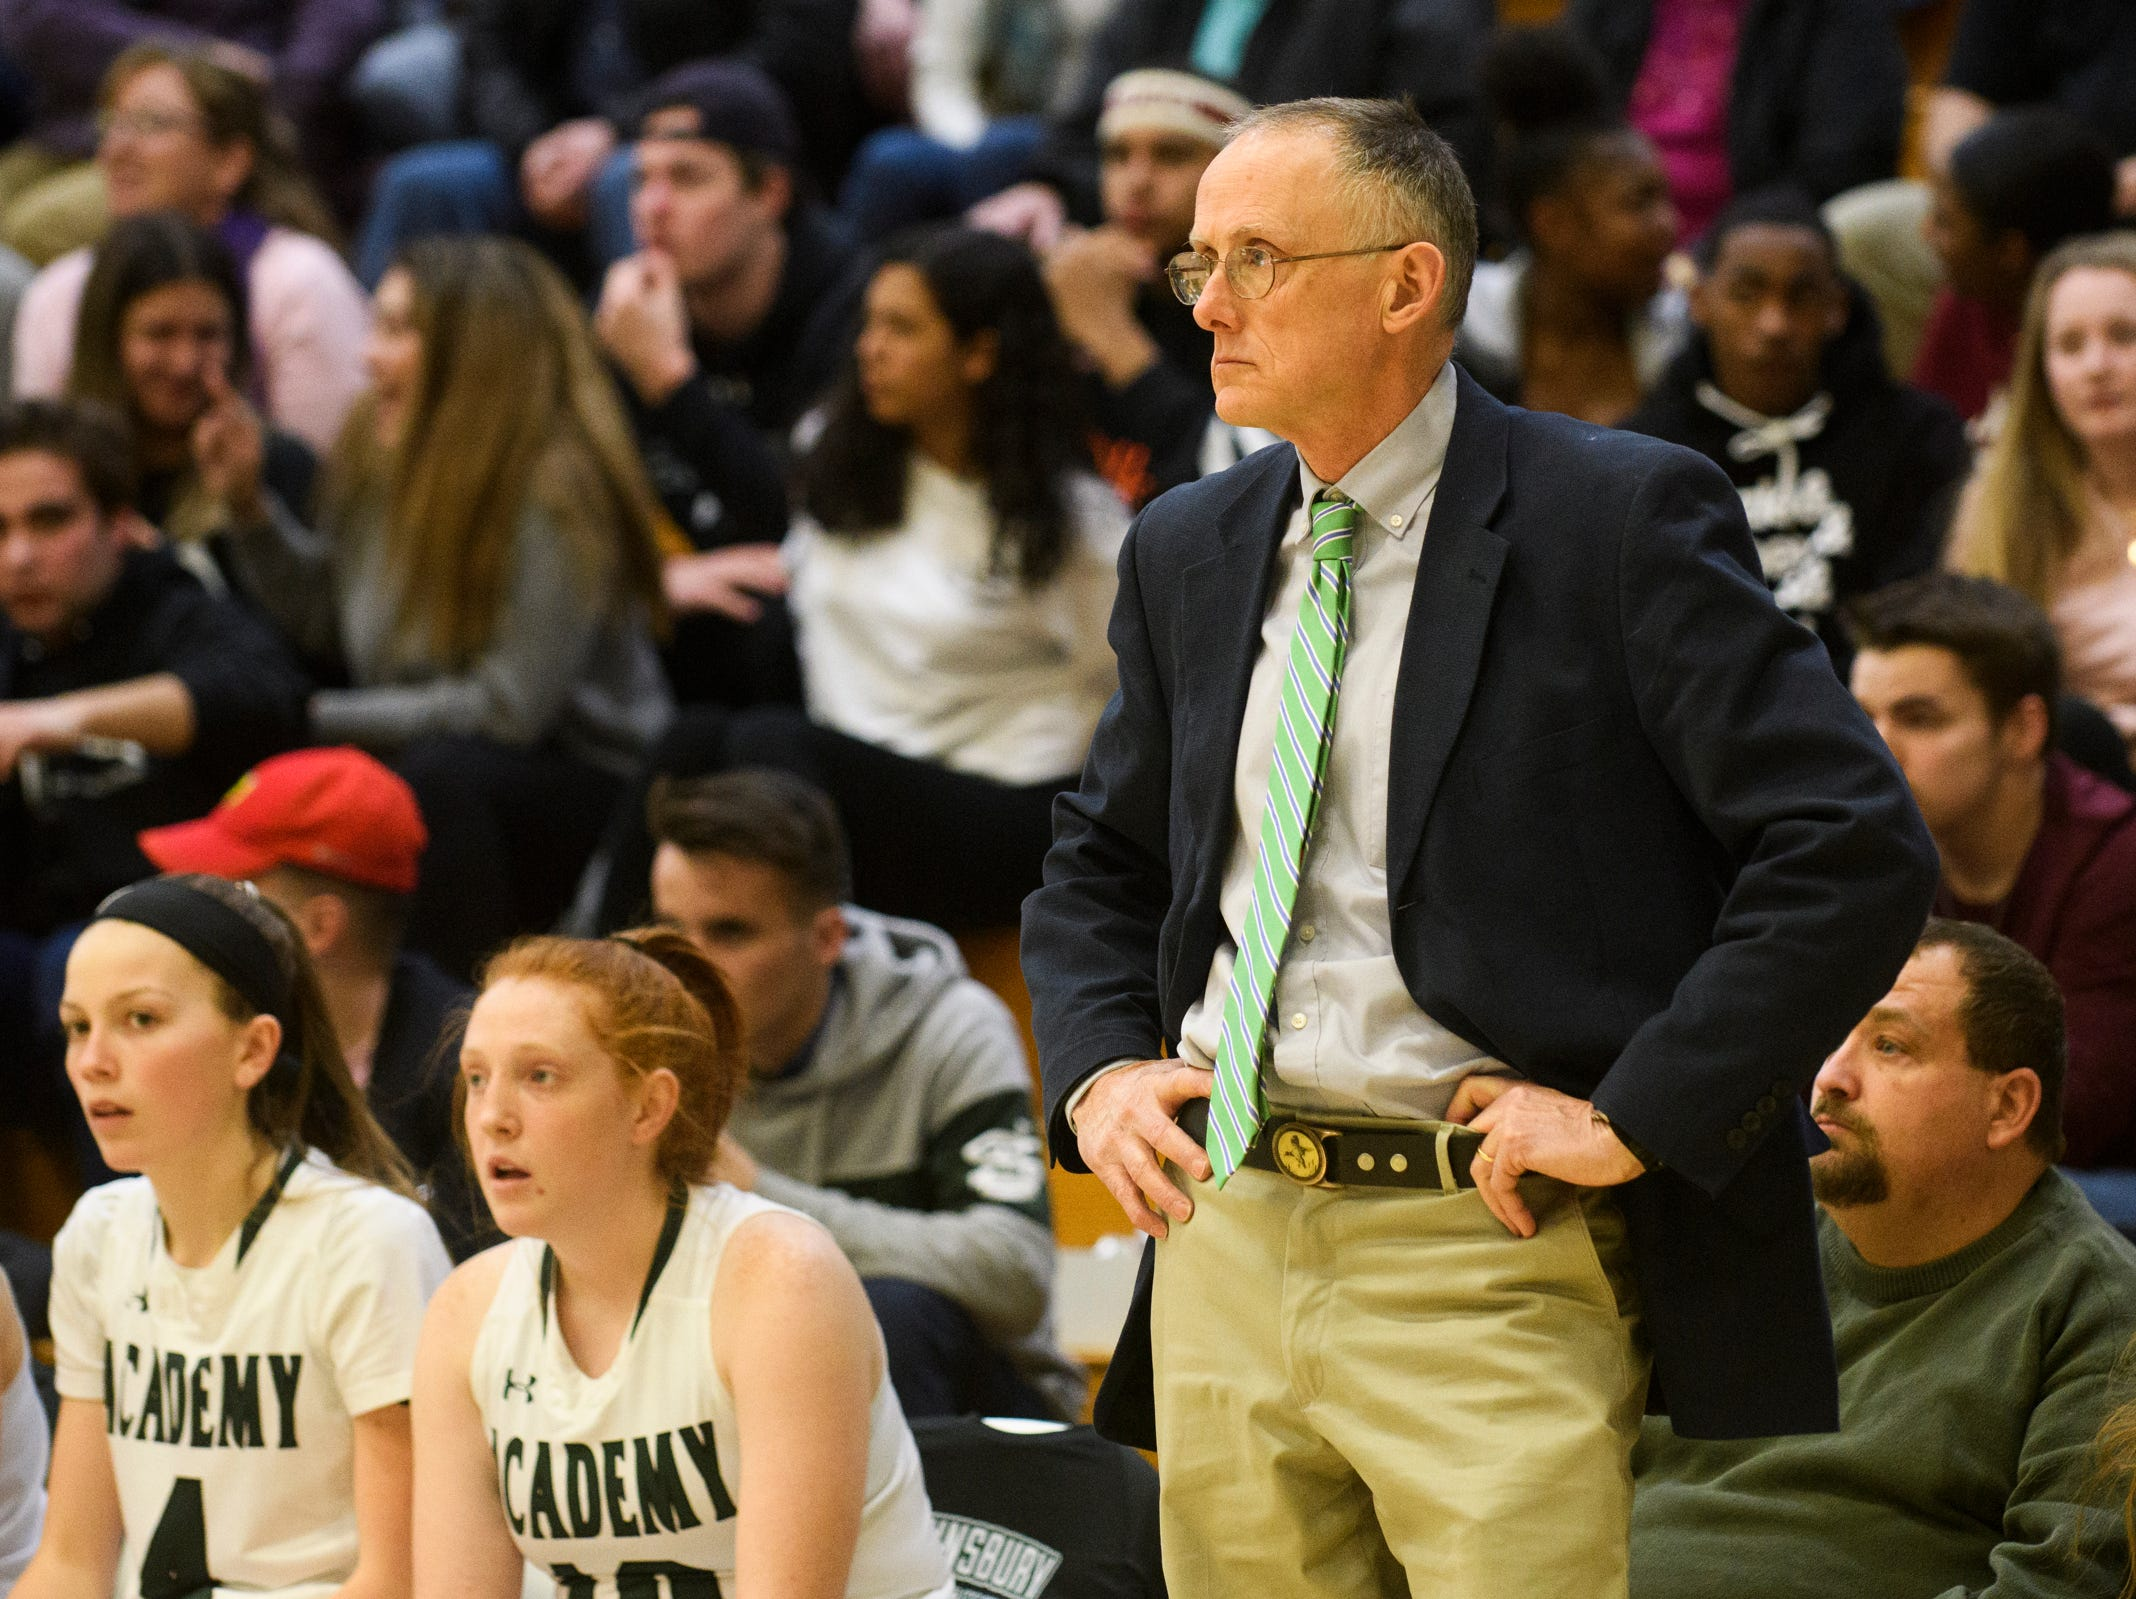 St. Johnsbury head coach Jack Driscoll watches the action on the court during the girls semifinal basketball game between the BFA St. Albans Comets and the St. Johnsbury Hilltoppers at Patrick Gym on Wednesday night March 6, 2019 in Burlington, Vermont.